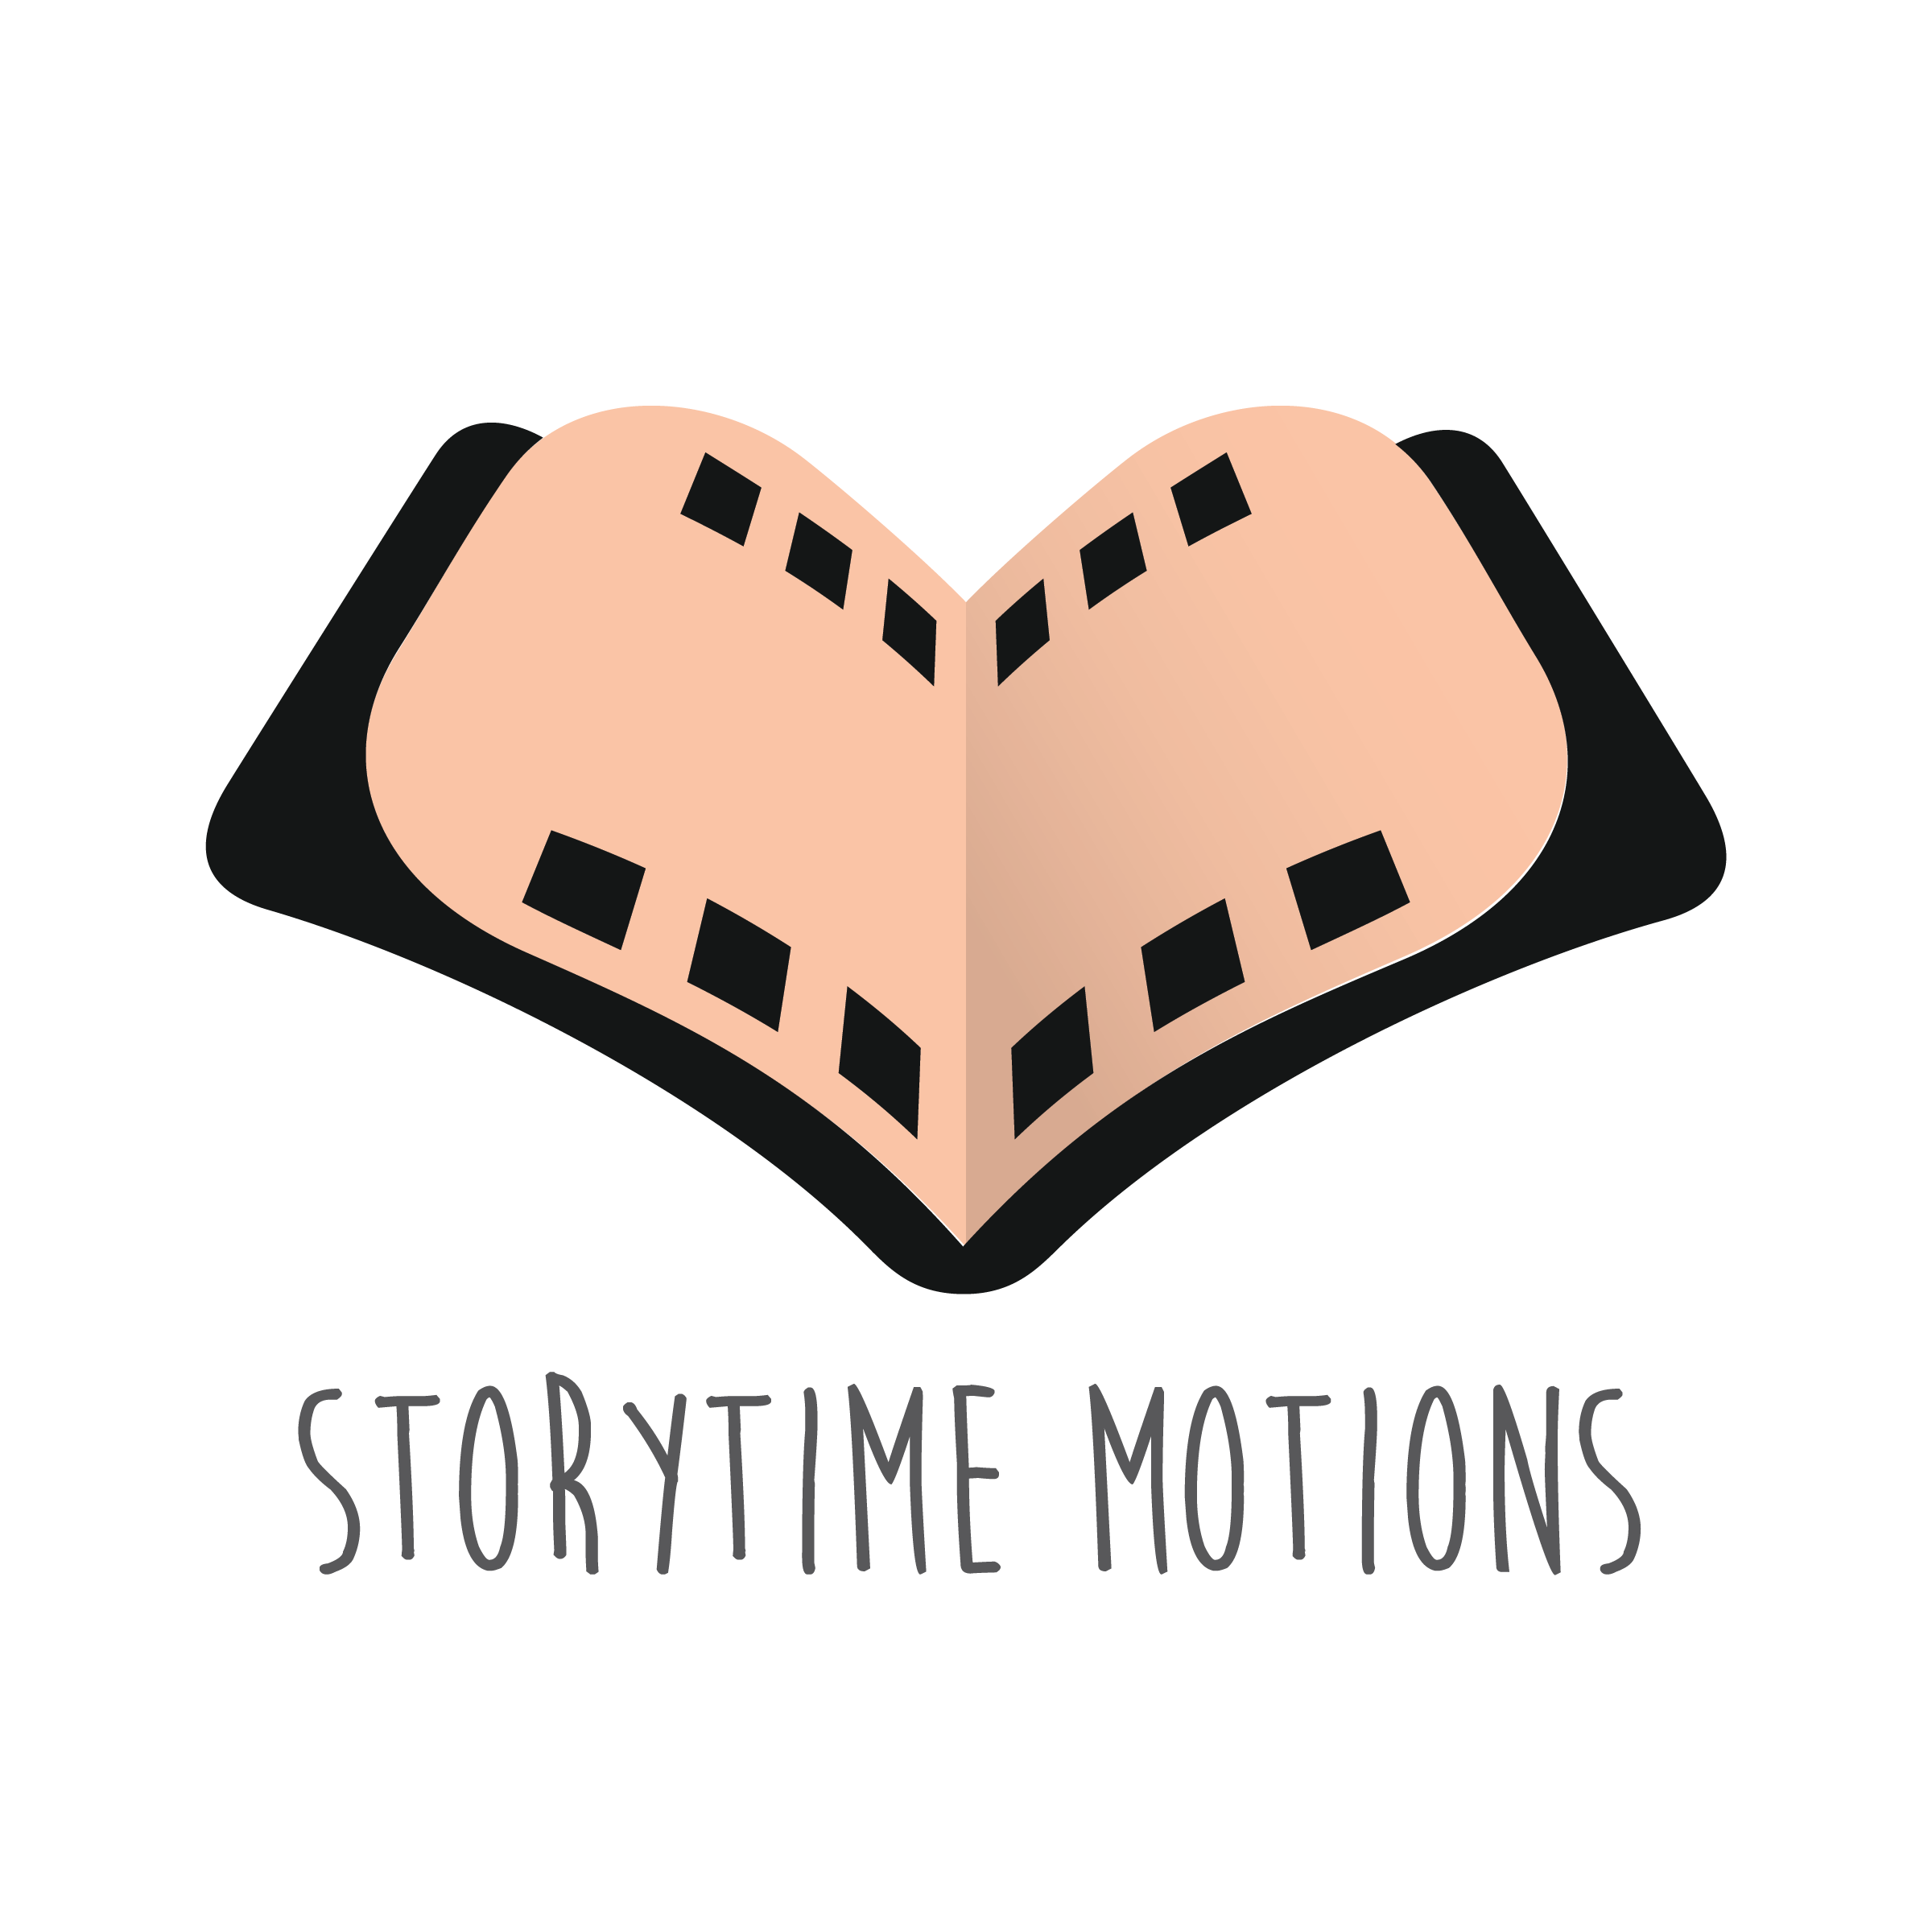 Storytime clipart storyteller. Questions motions